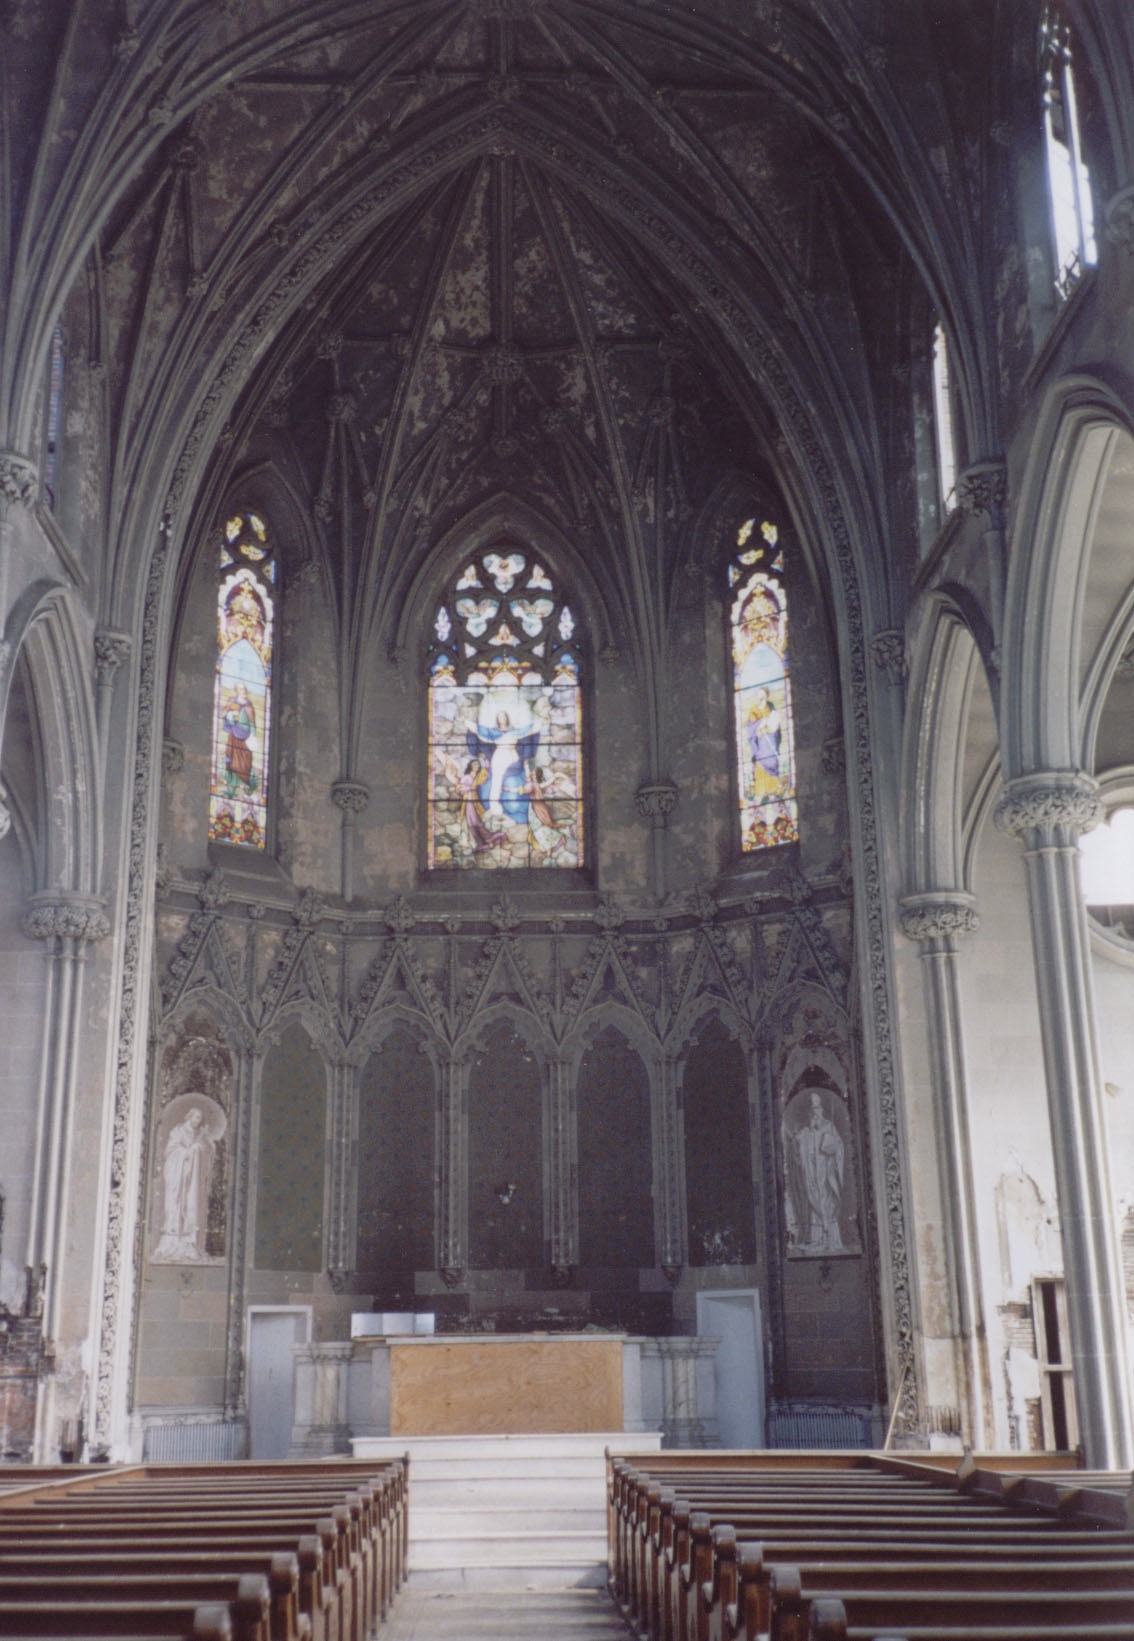 In 2007, the interior of the church still had its stained-glass windows and interior decor.